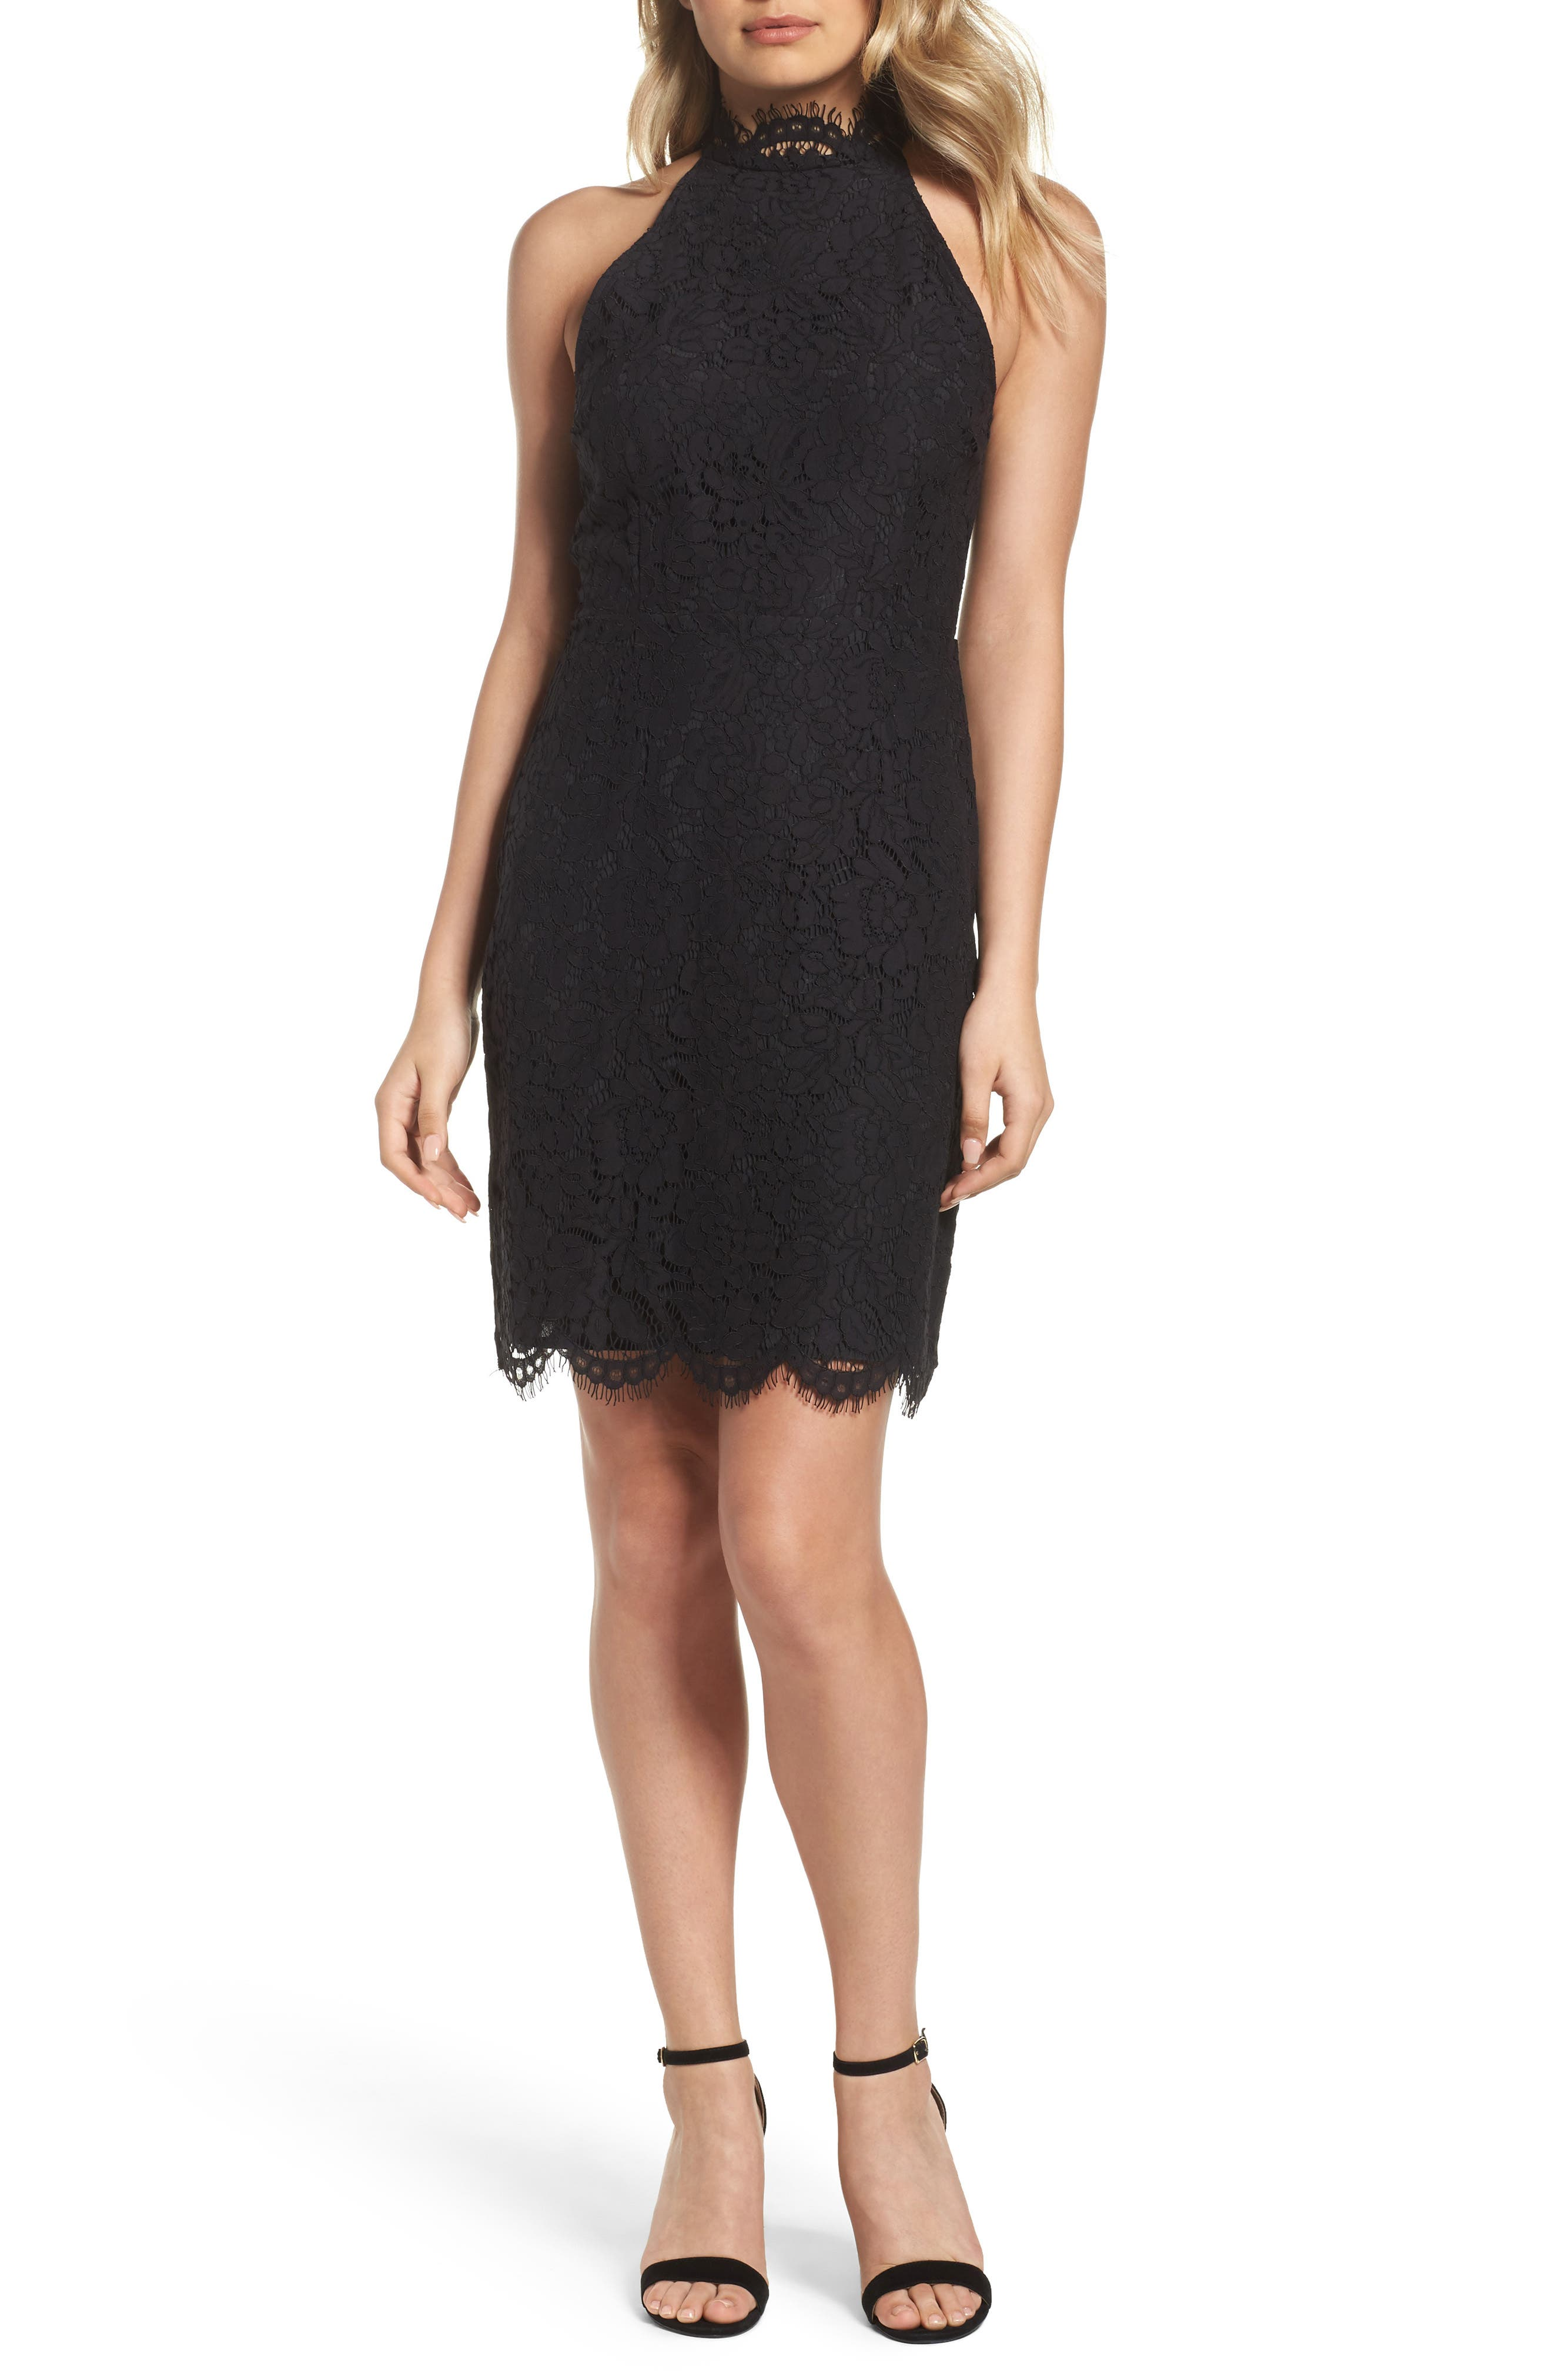 BB DAKOTA, Cara High Neck Lace Cocktail Dress, Main thumbnail 1, color, 001